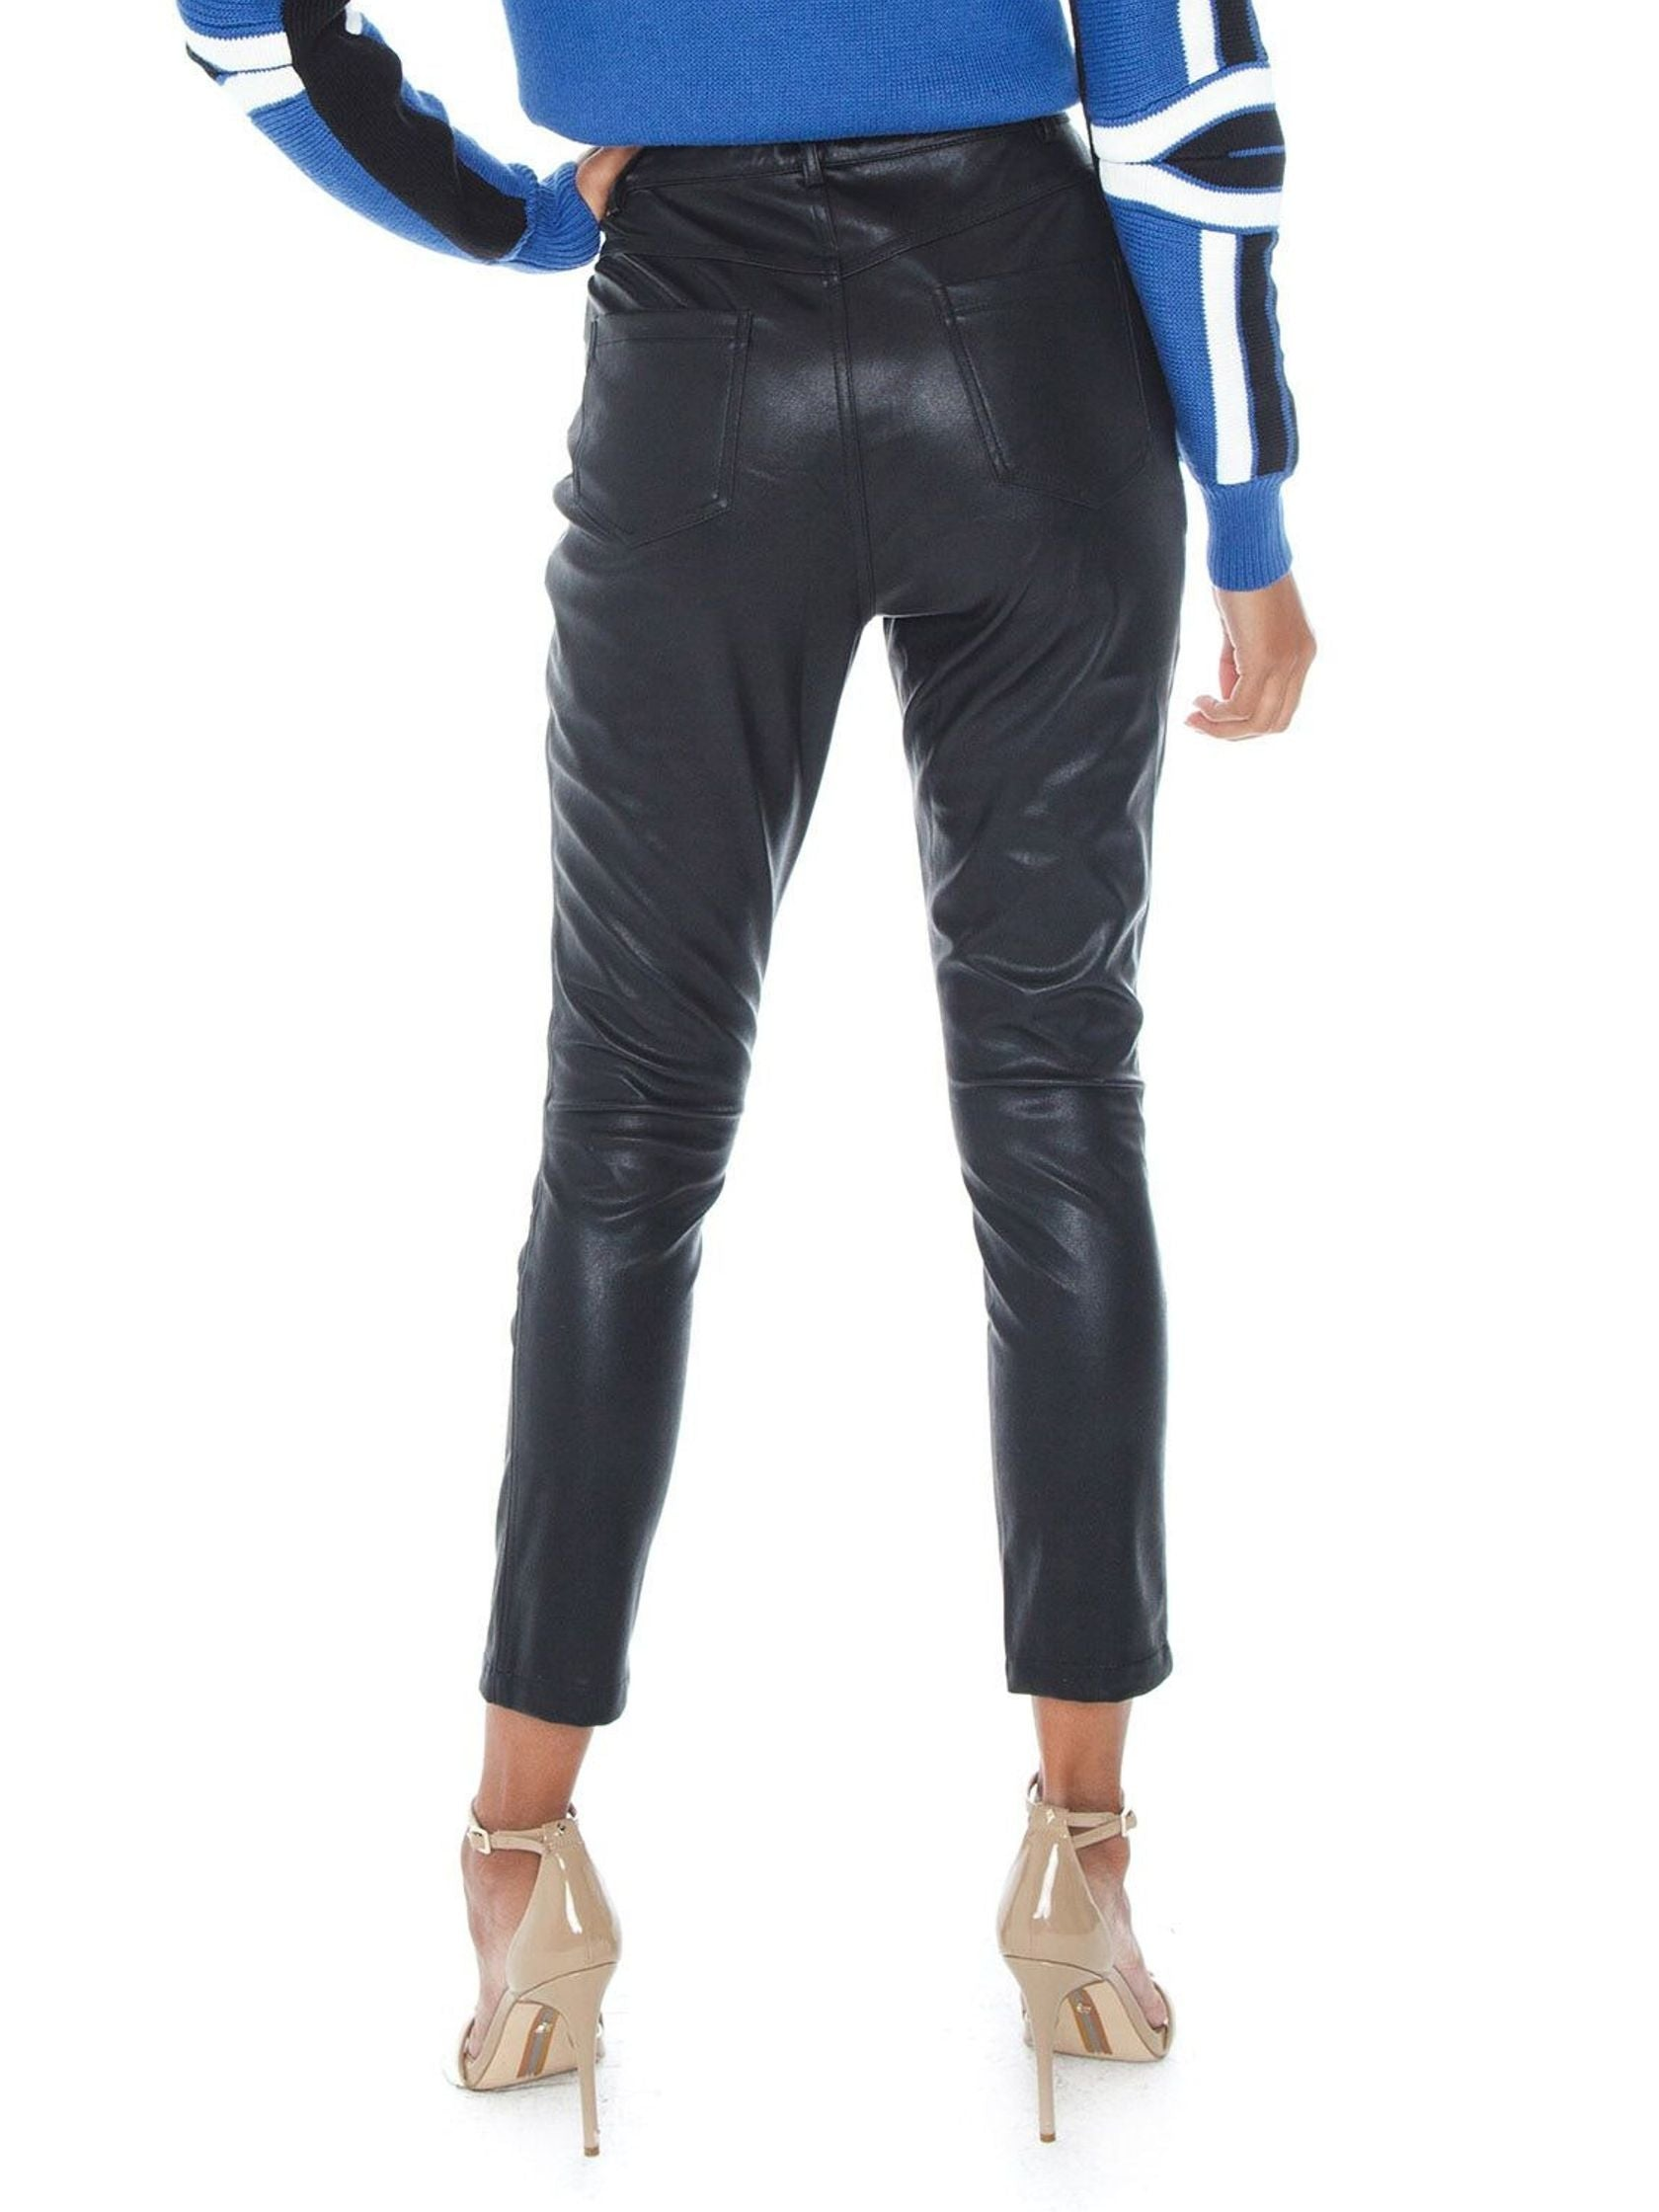 Women outfit in a pants rental from MINKPINK called Rory Biker Pant